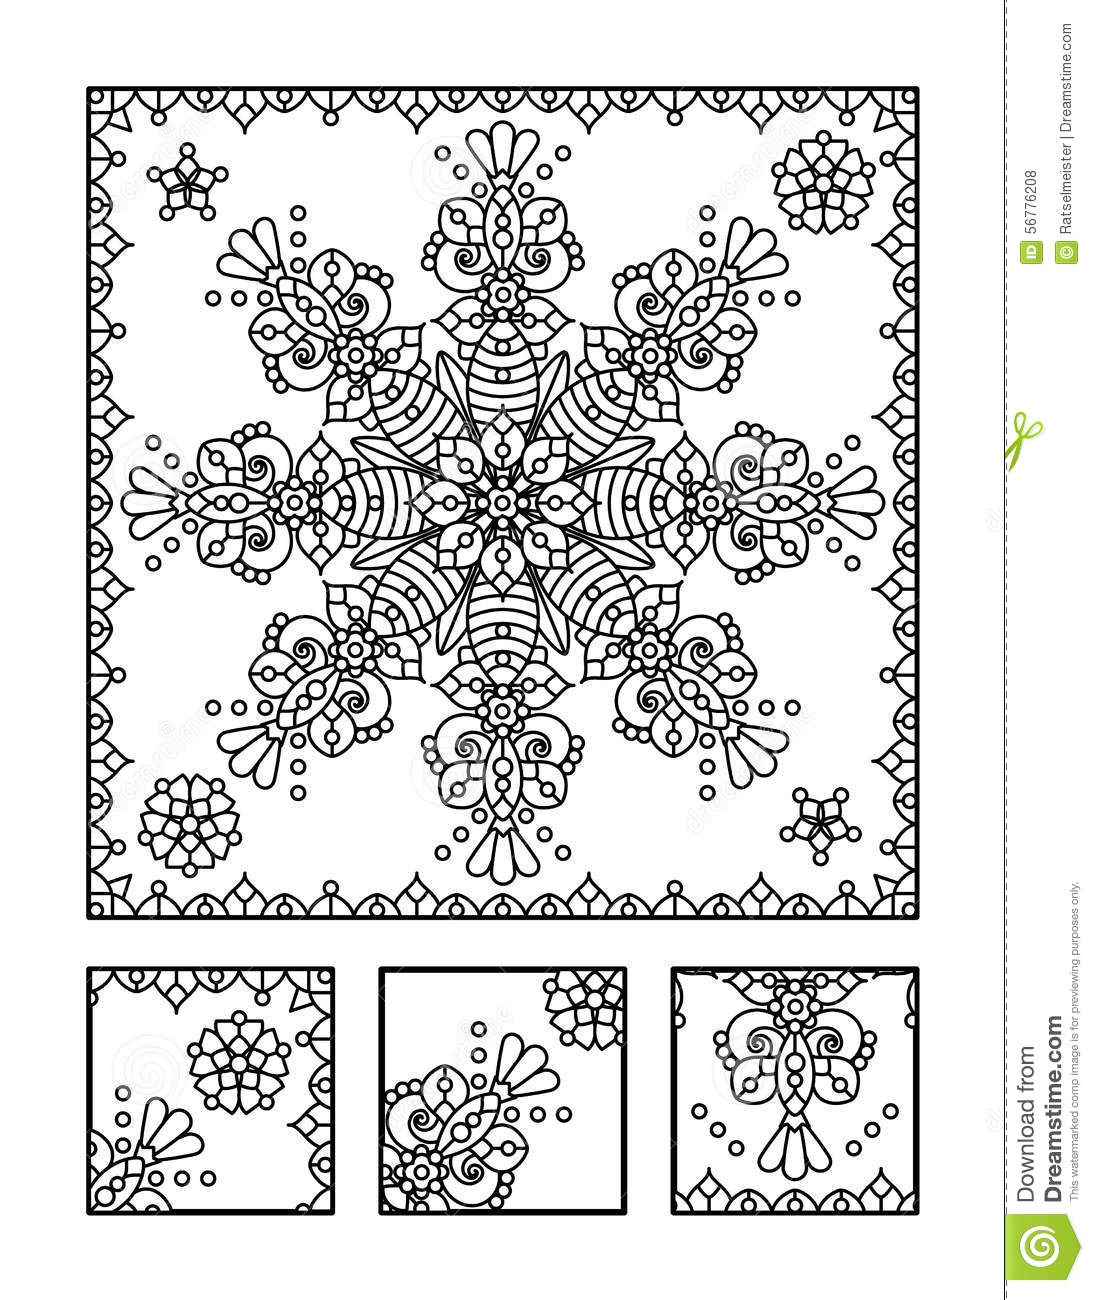 coloring page and visual puzzle for adults stock vector image